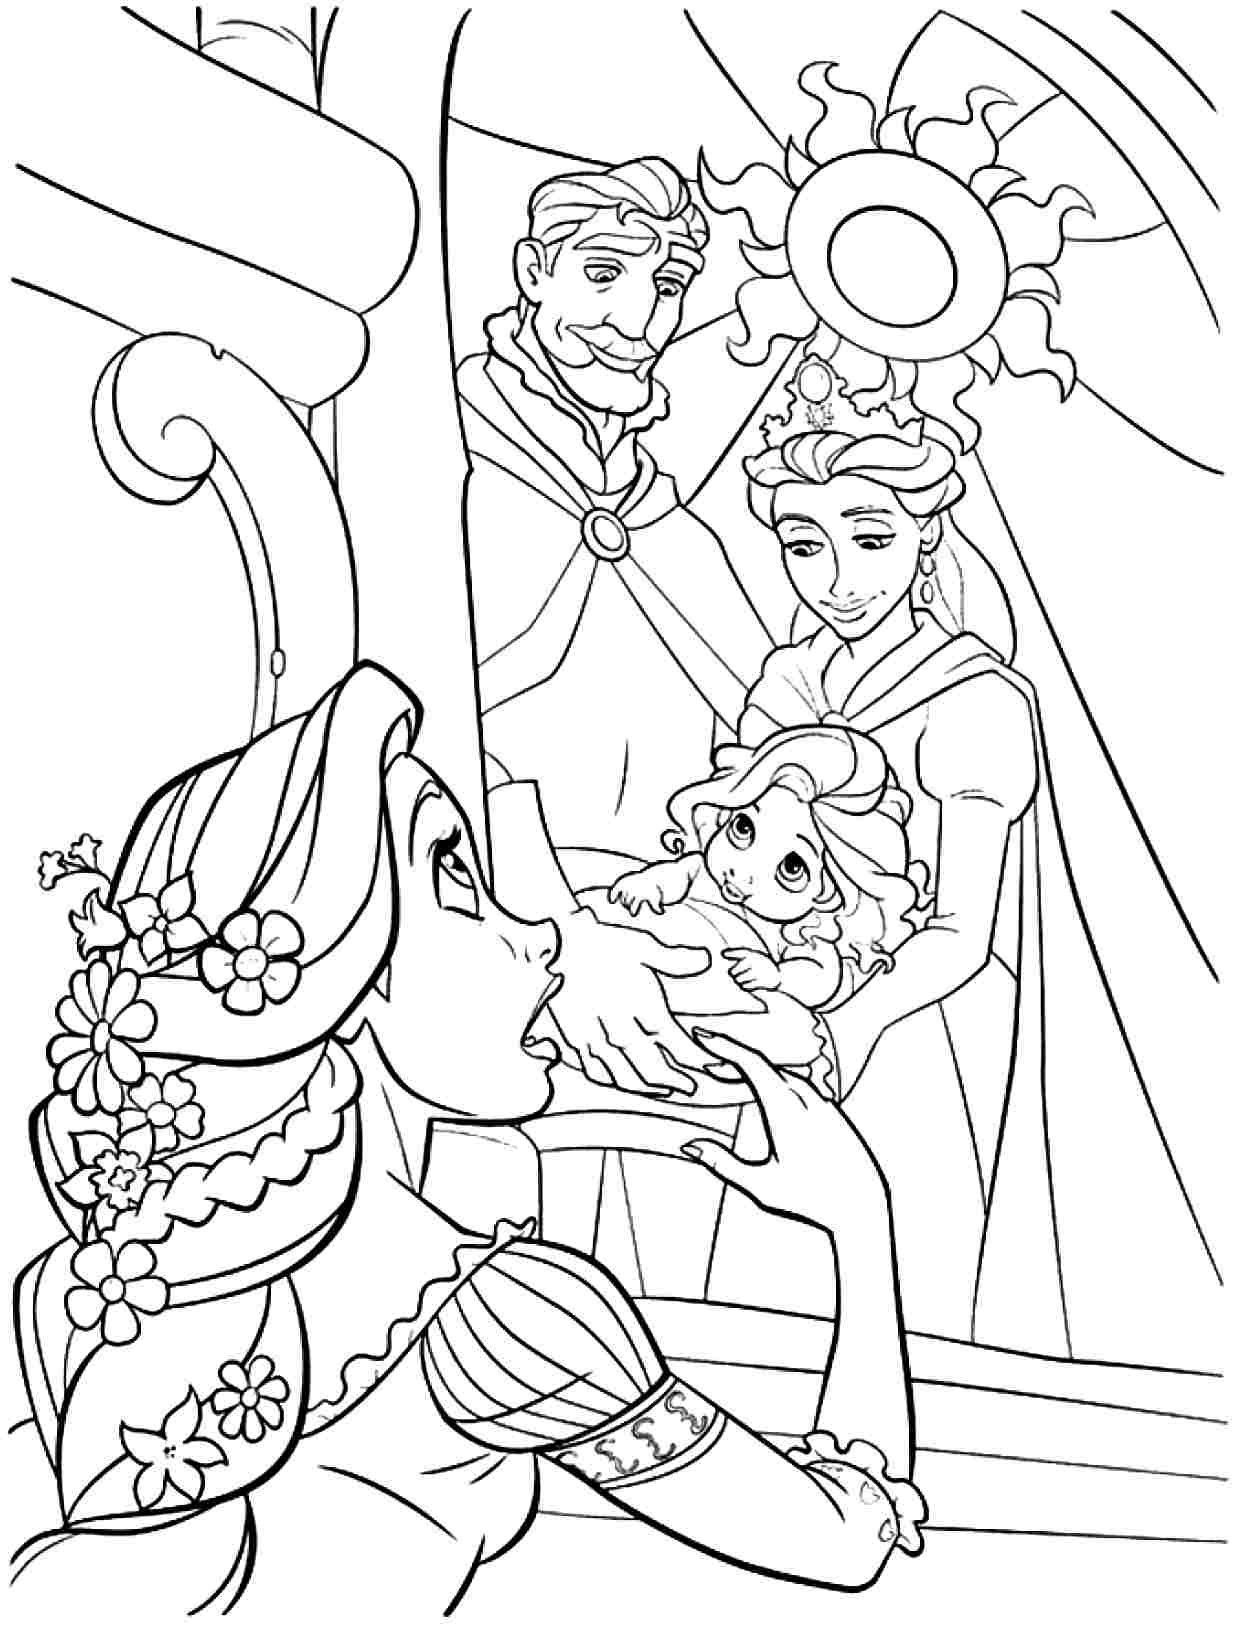 free rapunzel coloring pages rapunzel tangled coloring pages best gift ideas blog free pages coloring rapunzel